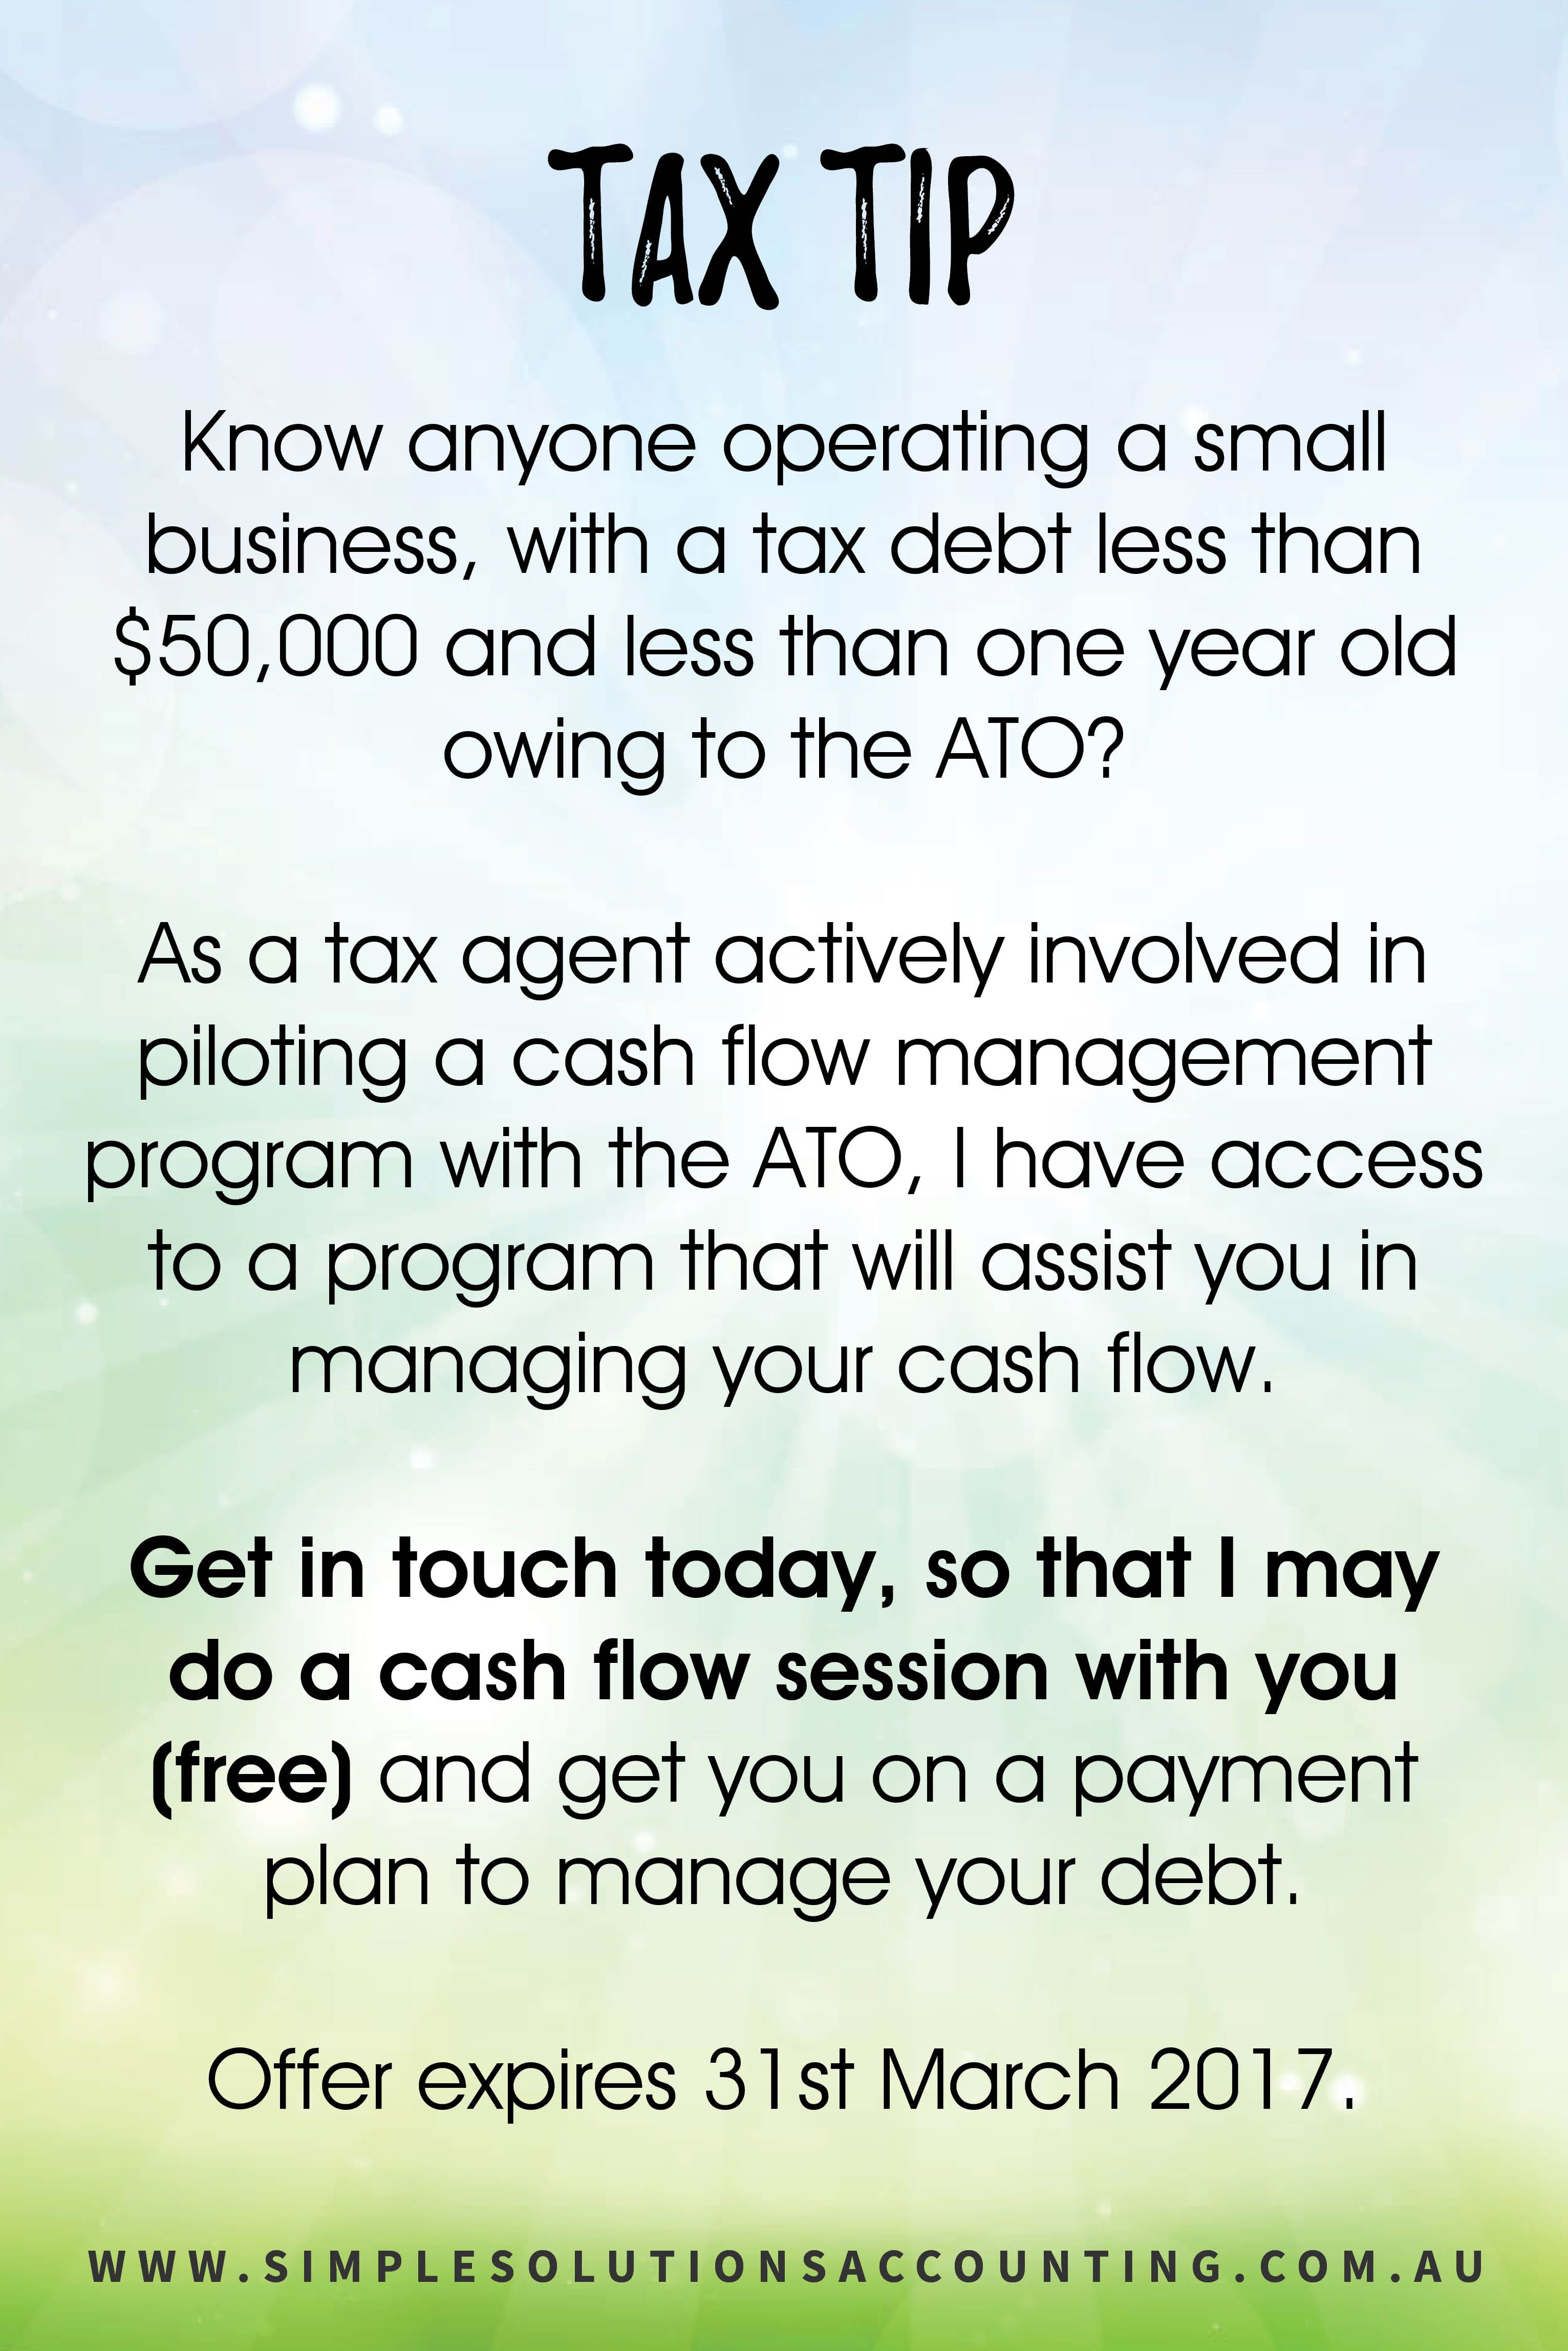 Contact me today for your free cashflow session gillian